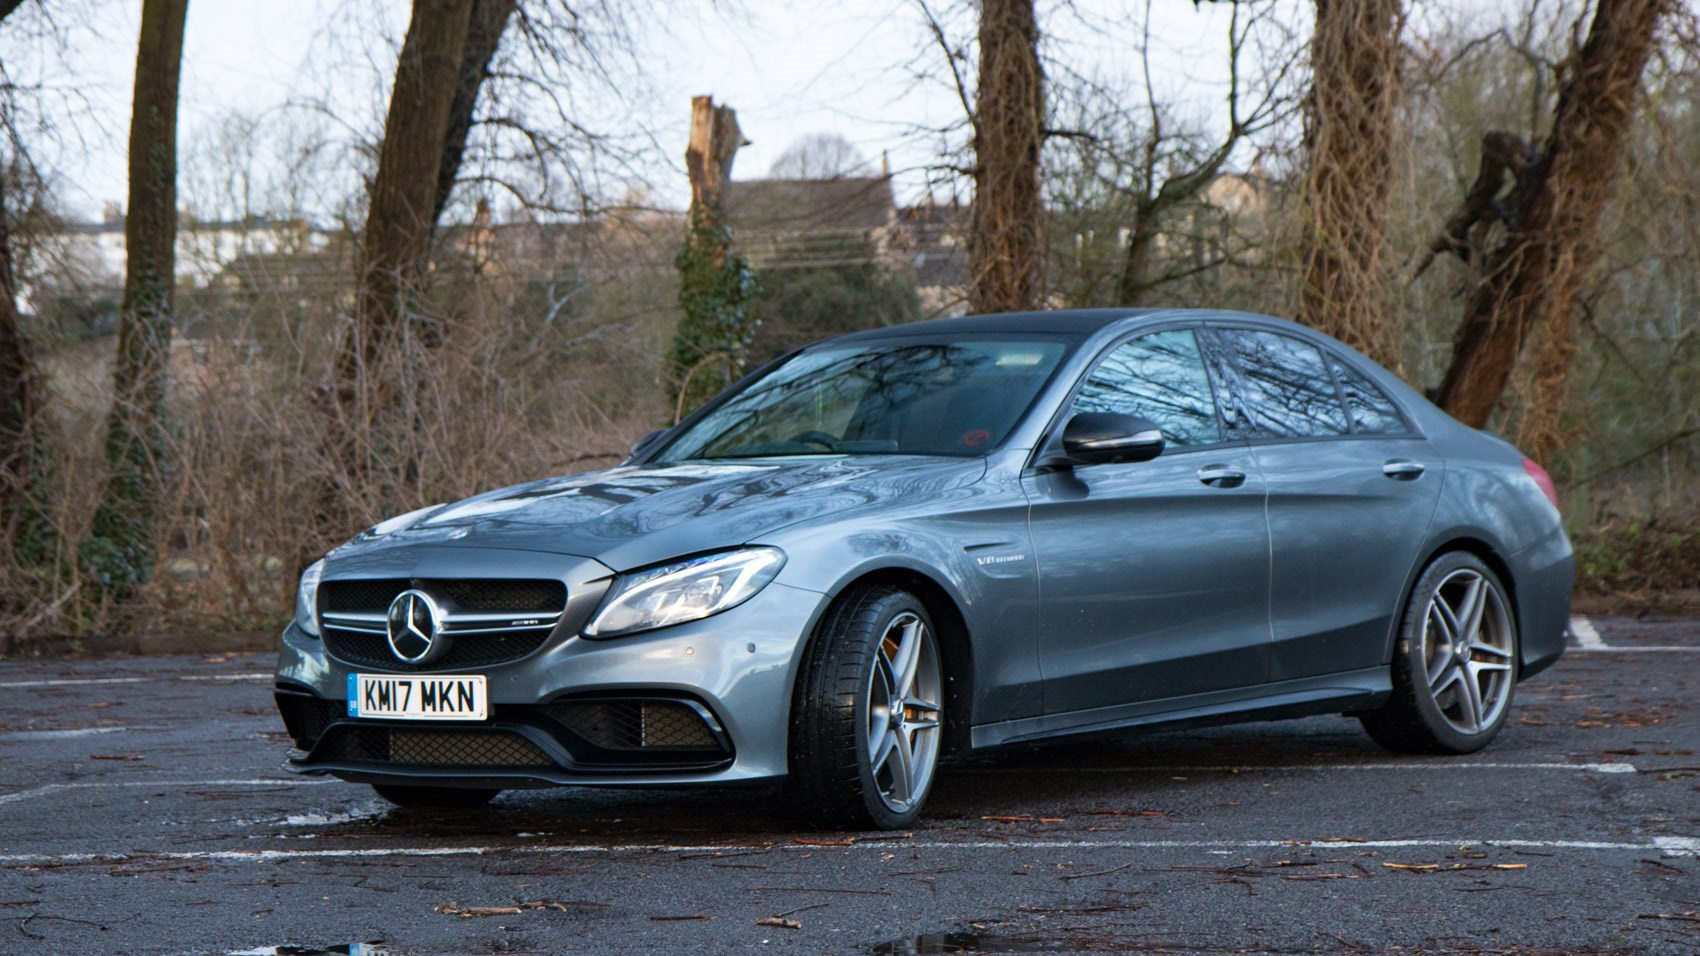 Mercedes Benz Lease Deals 0 Down >> Mercedes C63 S saloon review: Executive looks with ...